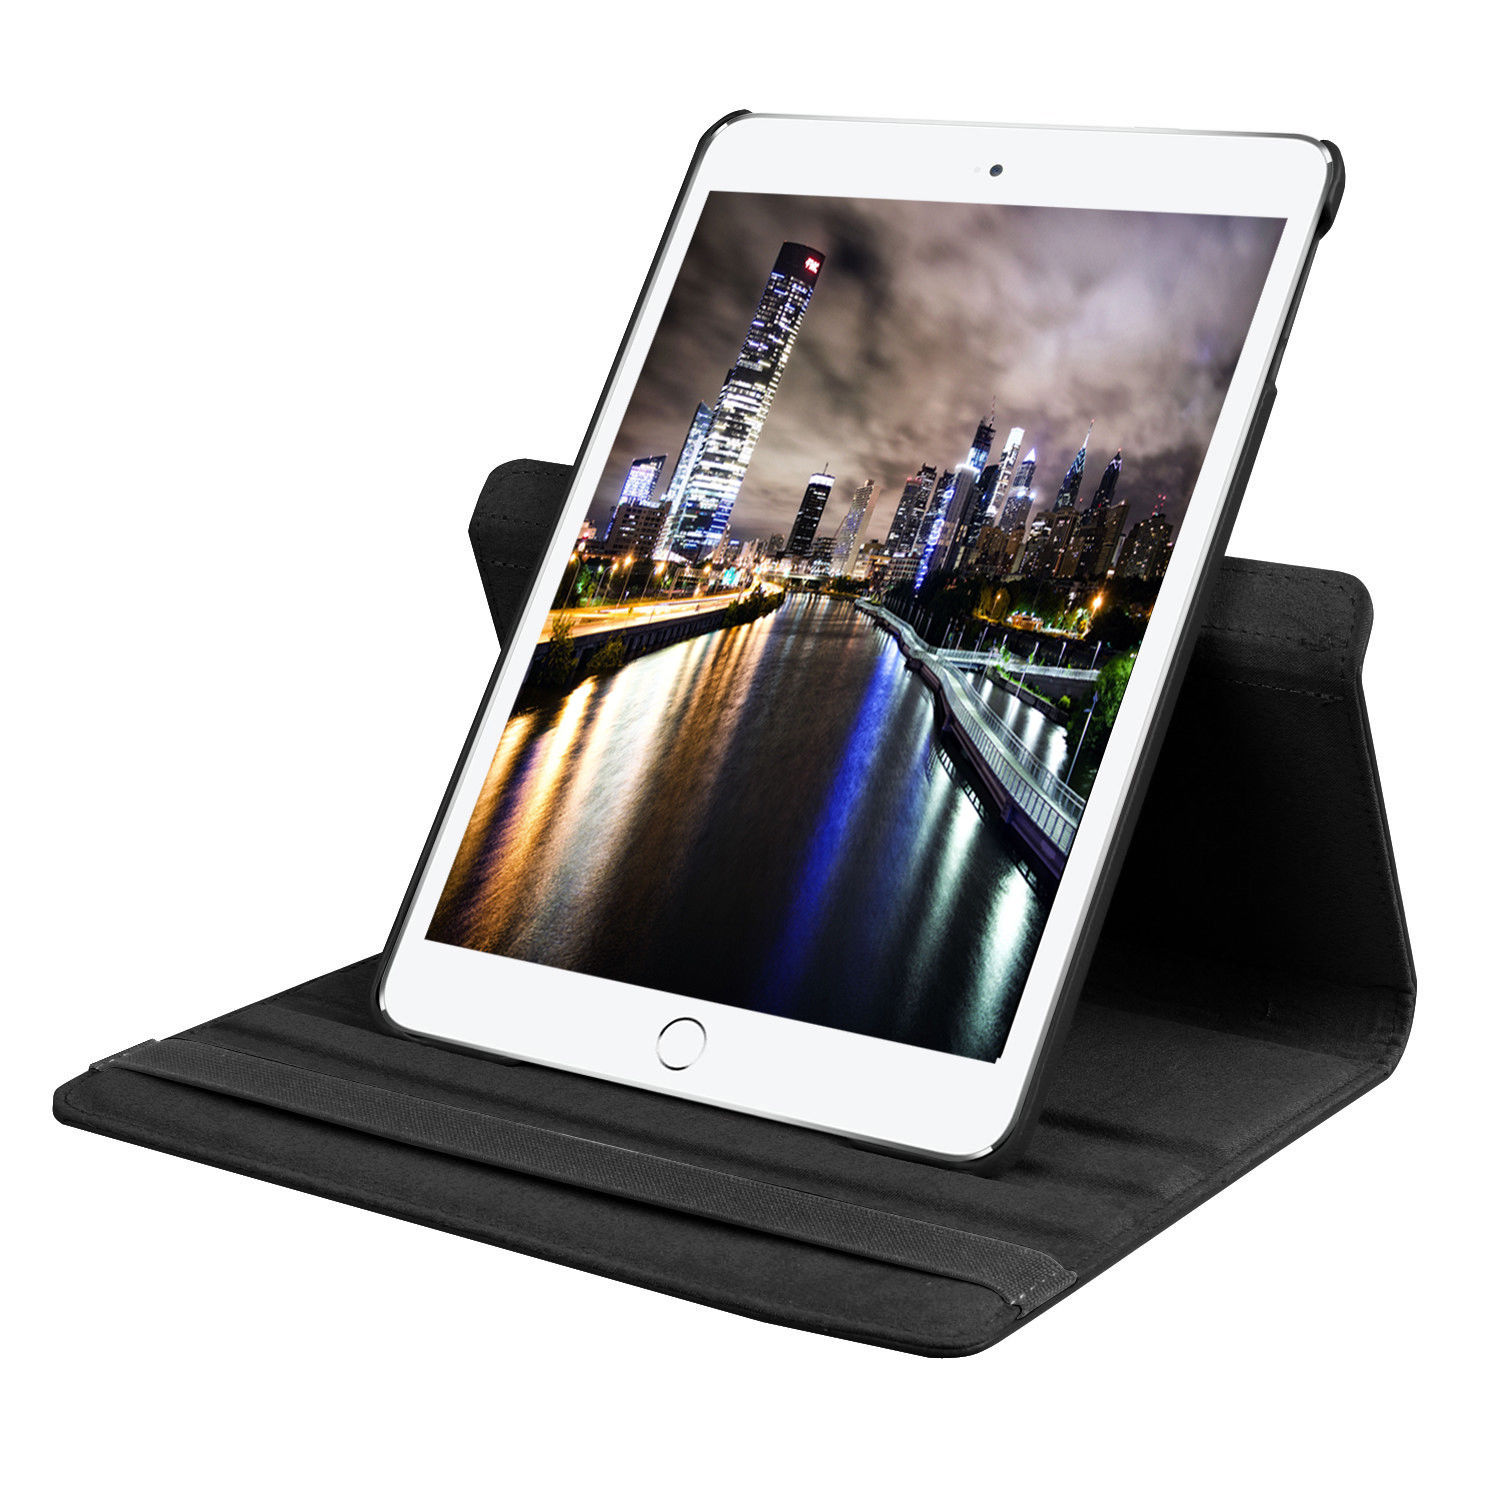 Custodia-per-Apple-iPad-Pro-2017-iPad-Air-3-10-5-Smart-Cover-Case-Custodia-Protettiva miniatura 13